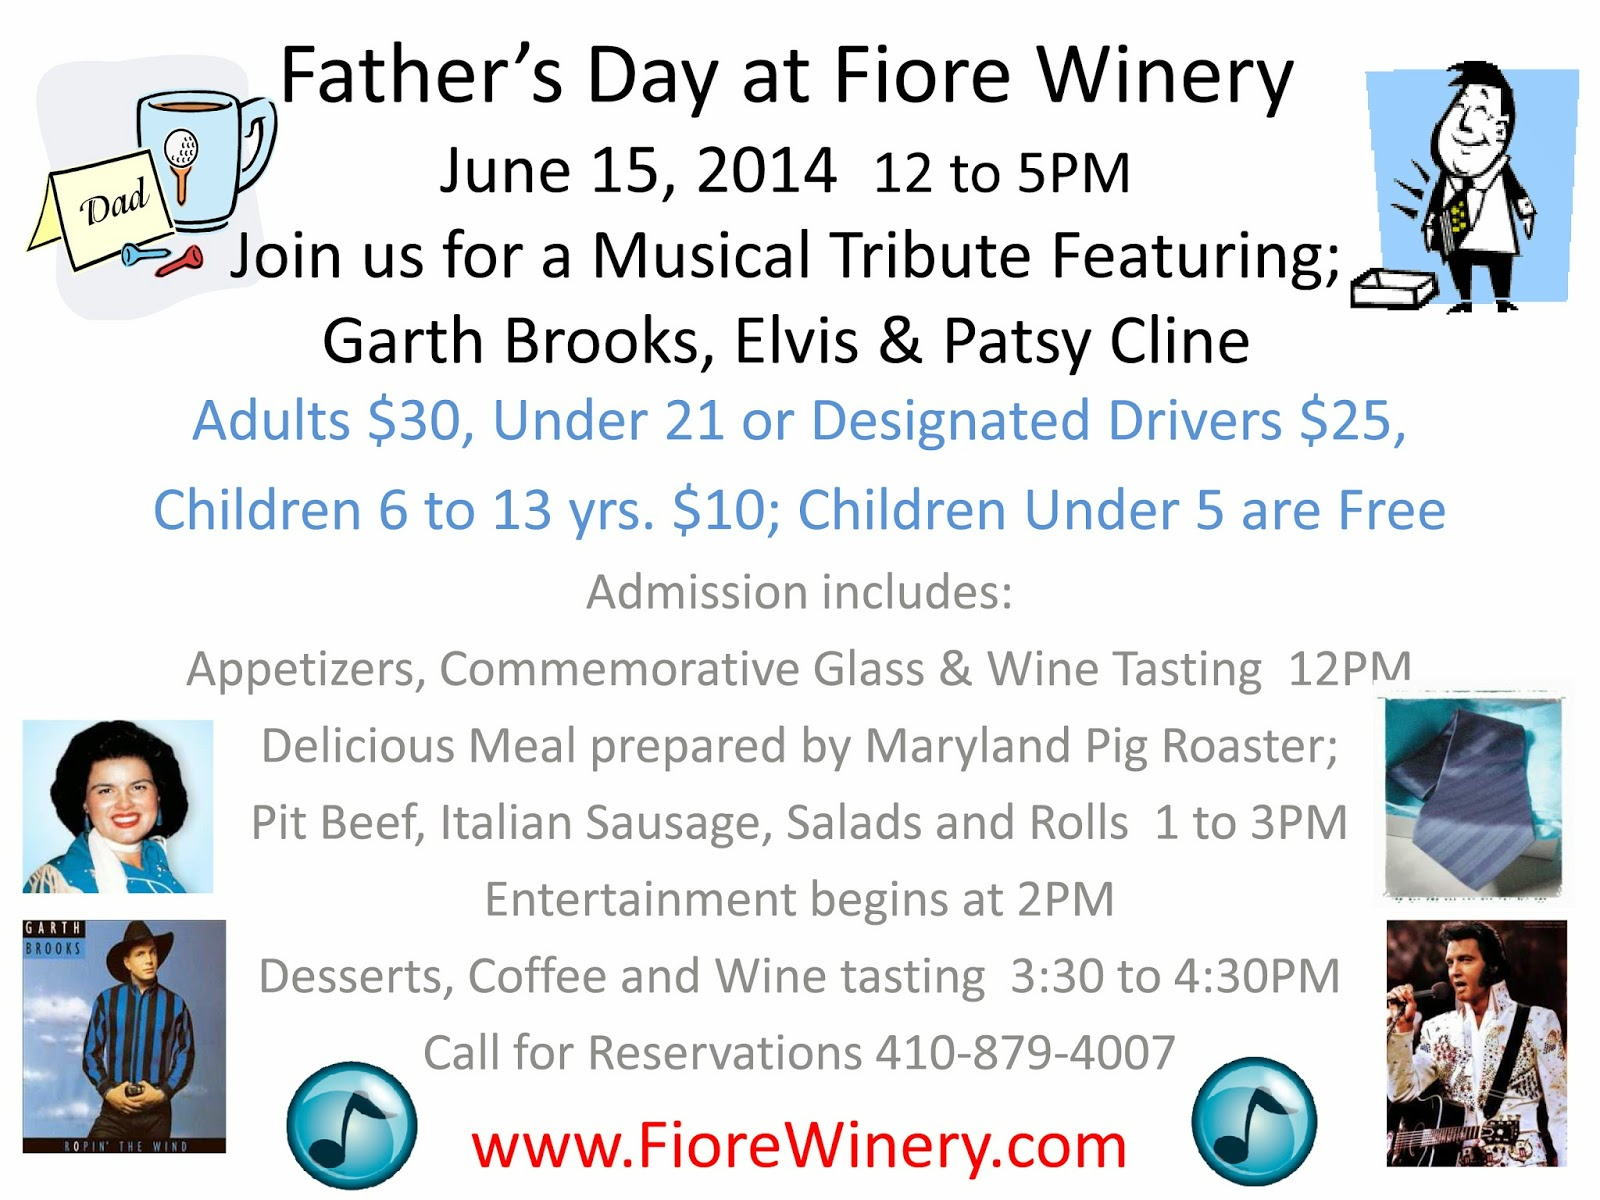 Fiore Winery Father's Day